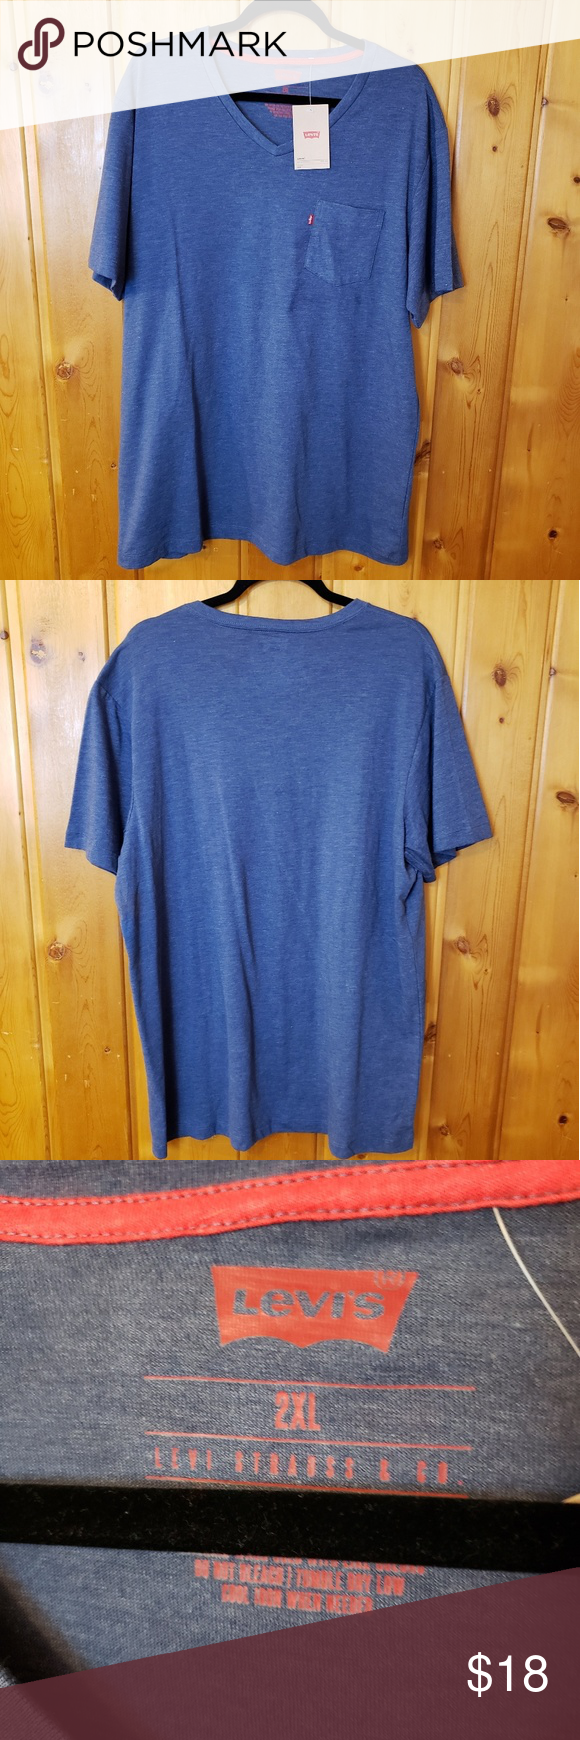 Levi's Brand Cotton Poly Blend Shirt 2XL